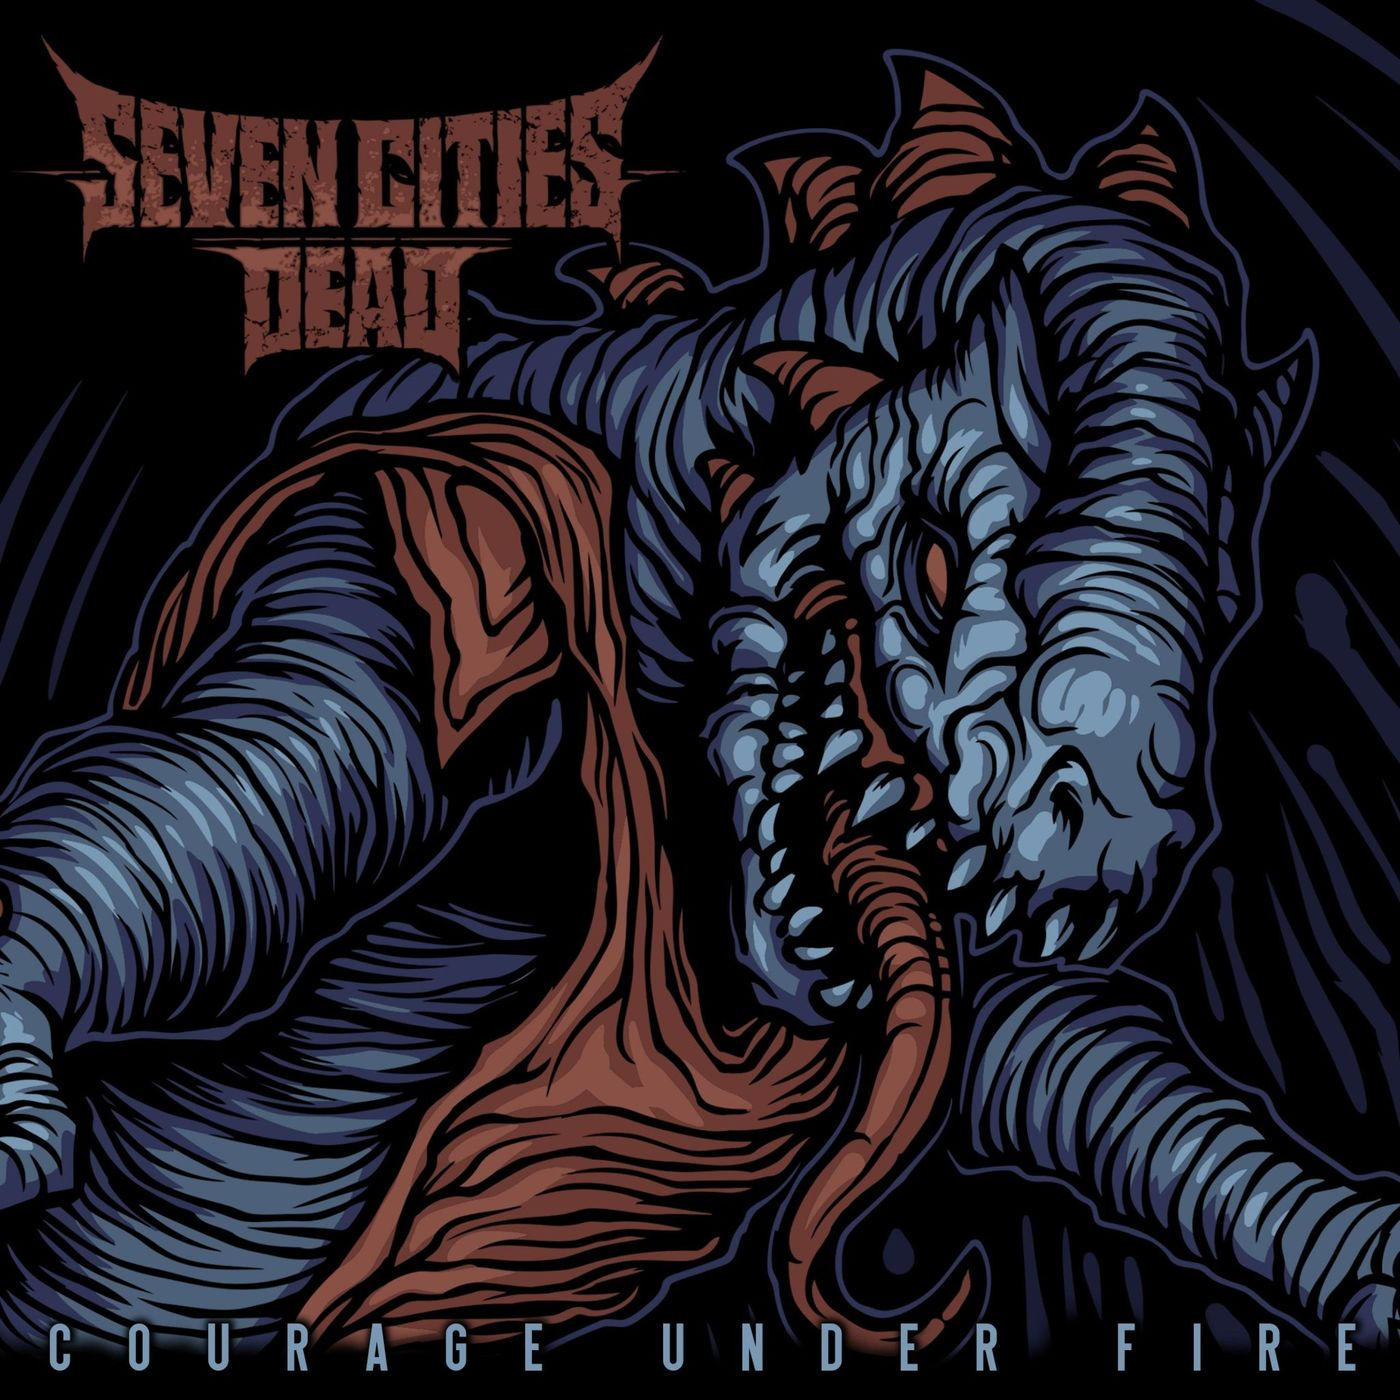 Seven Cities Dead - Courage Under Fire [single] (2020)